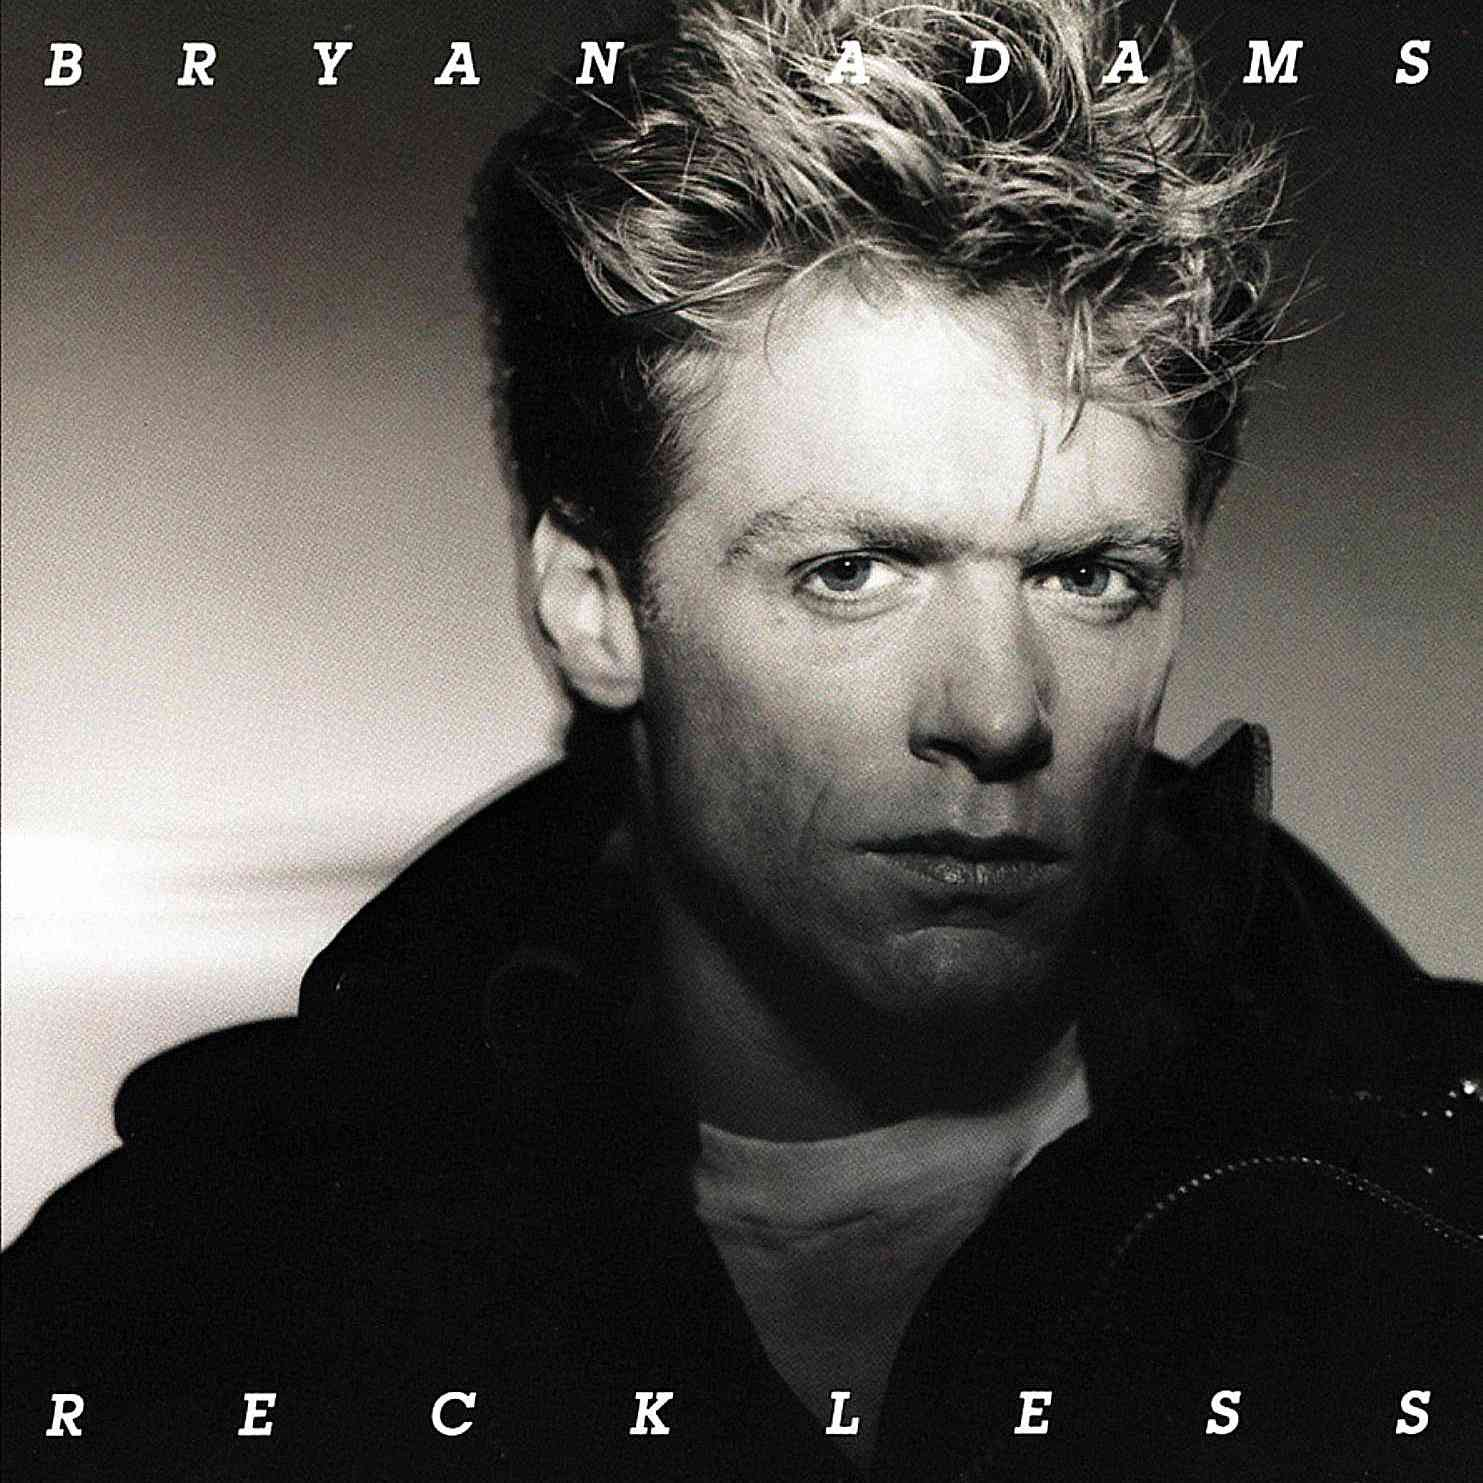 Though perhaps not his best album, 1985's 'Reckless' undoubtedly was his most popular.